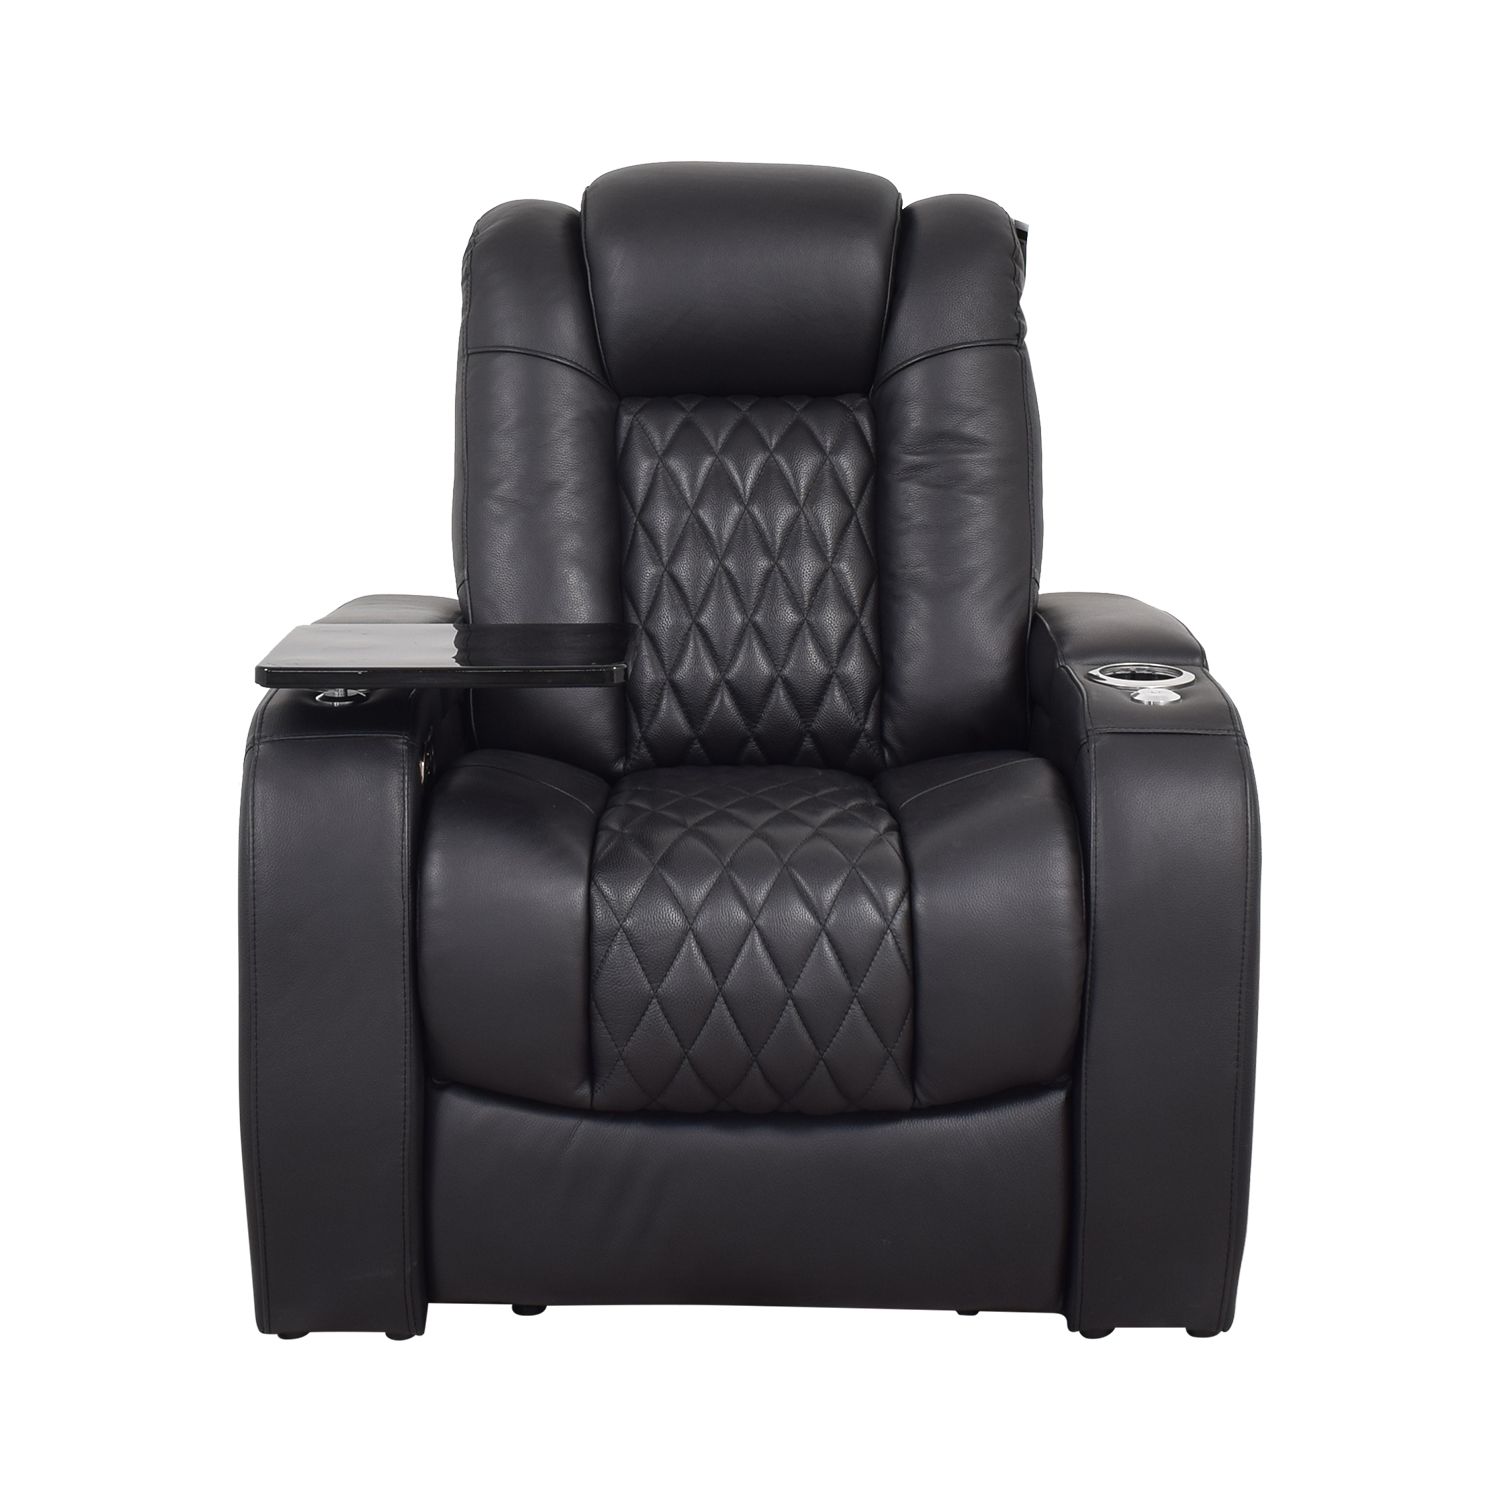 buy Seatcraft Seatcraft Diamante Home Theater Seating Leather Power Recliner online